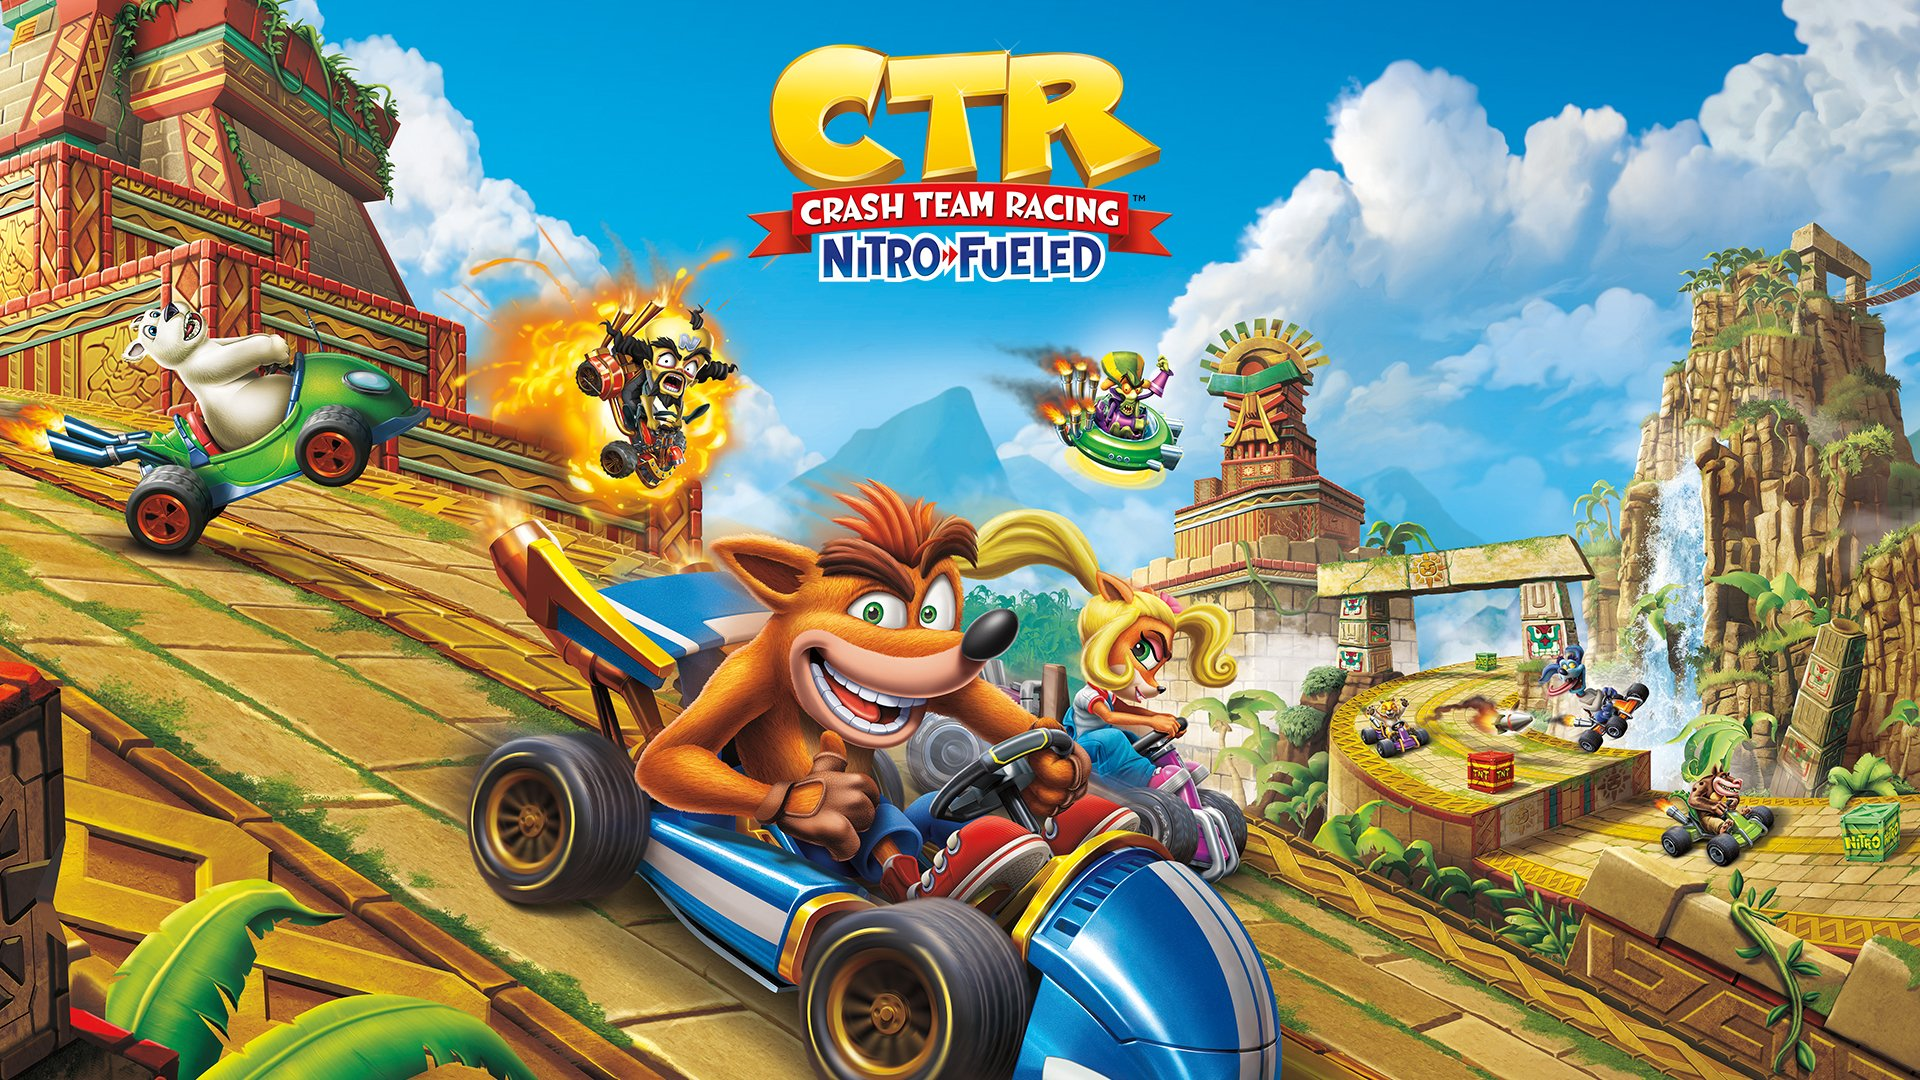 Crash Team Racing Nitro-Fueled Free PS4 Dynamic Theme Available For